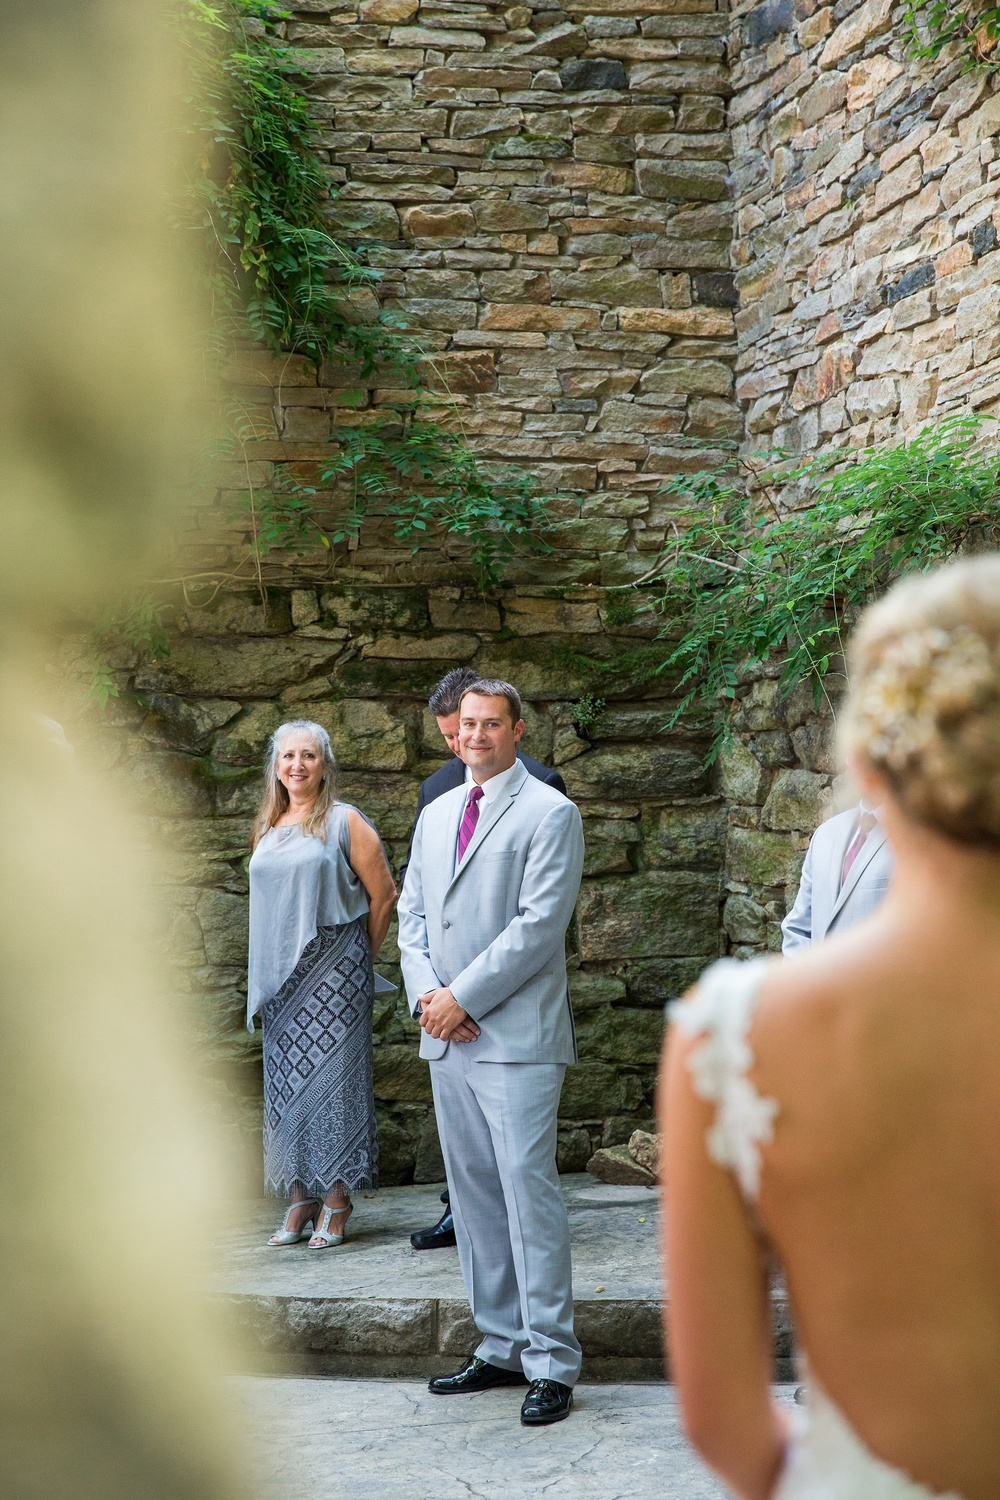 WitwiskiWedding_TheMillAtFineCreek_BLOG_0027.jpg